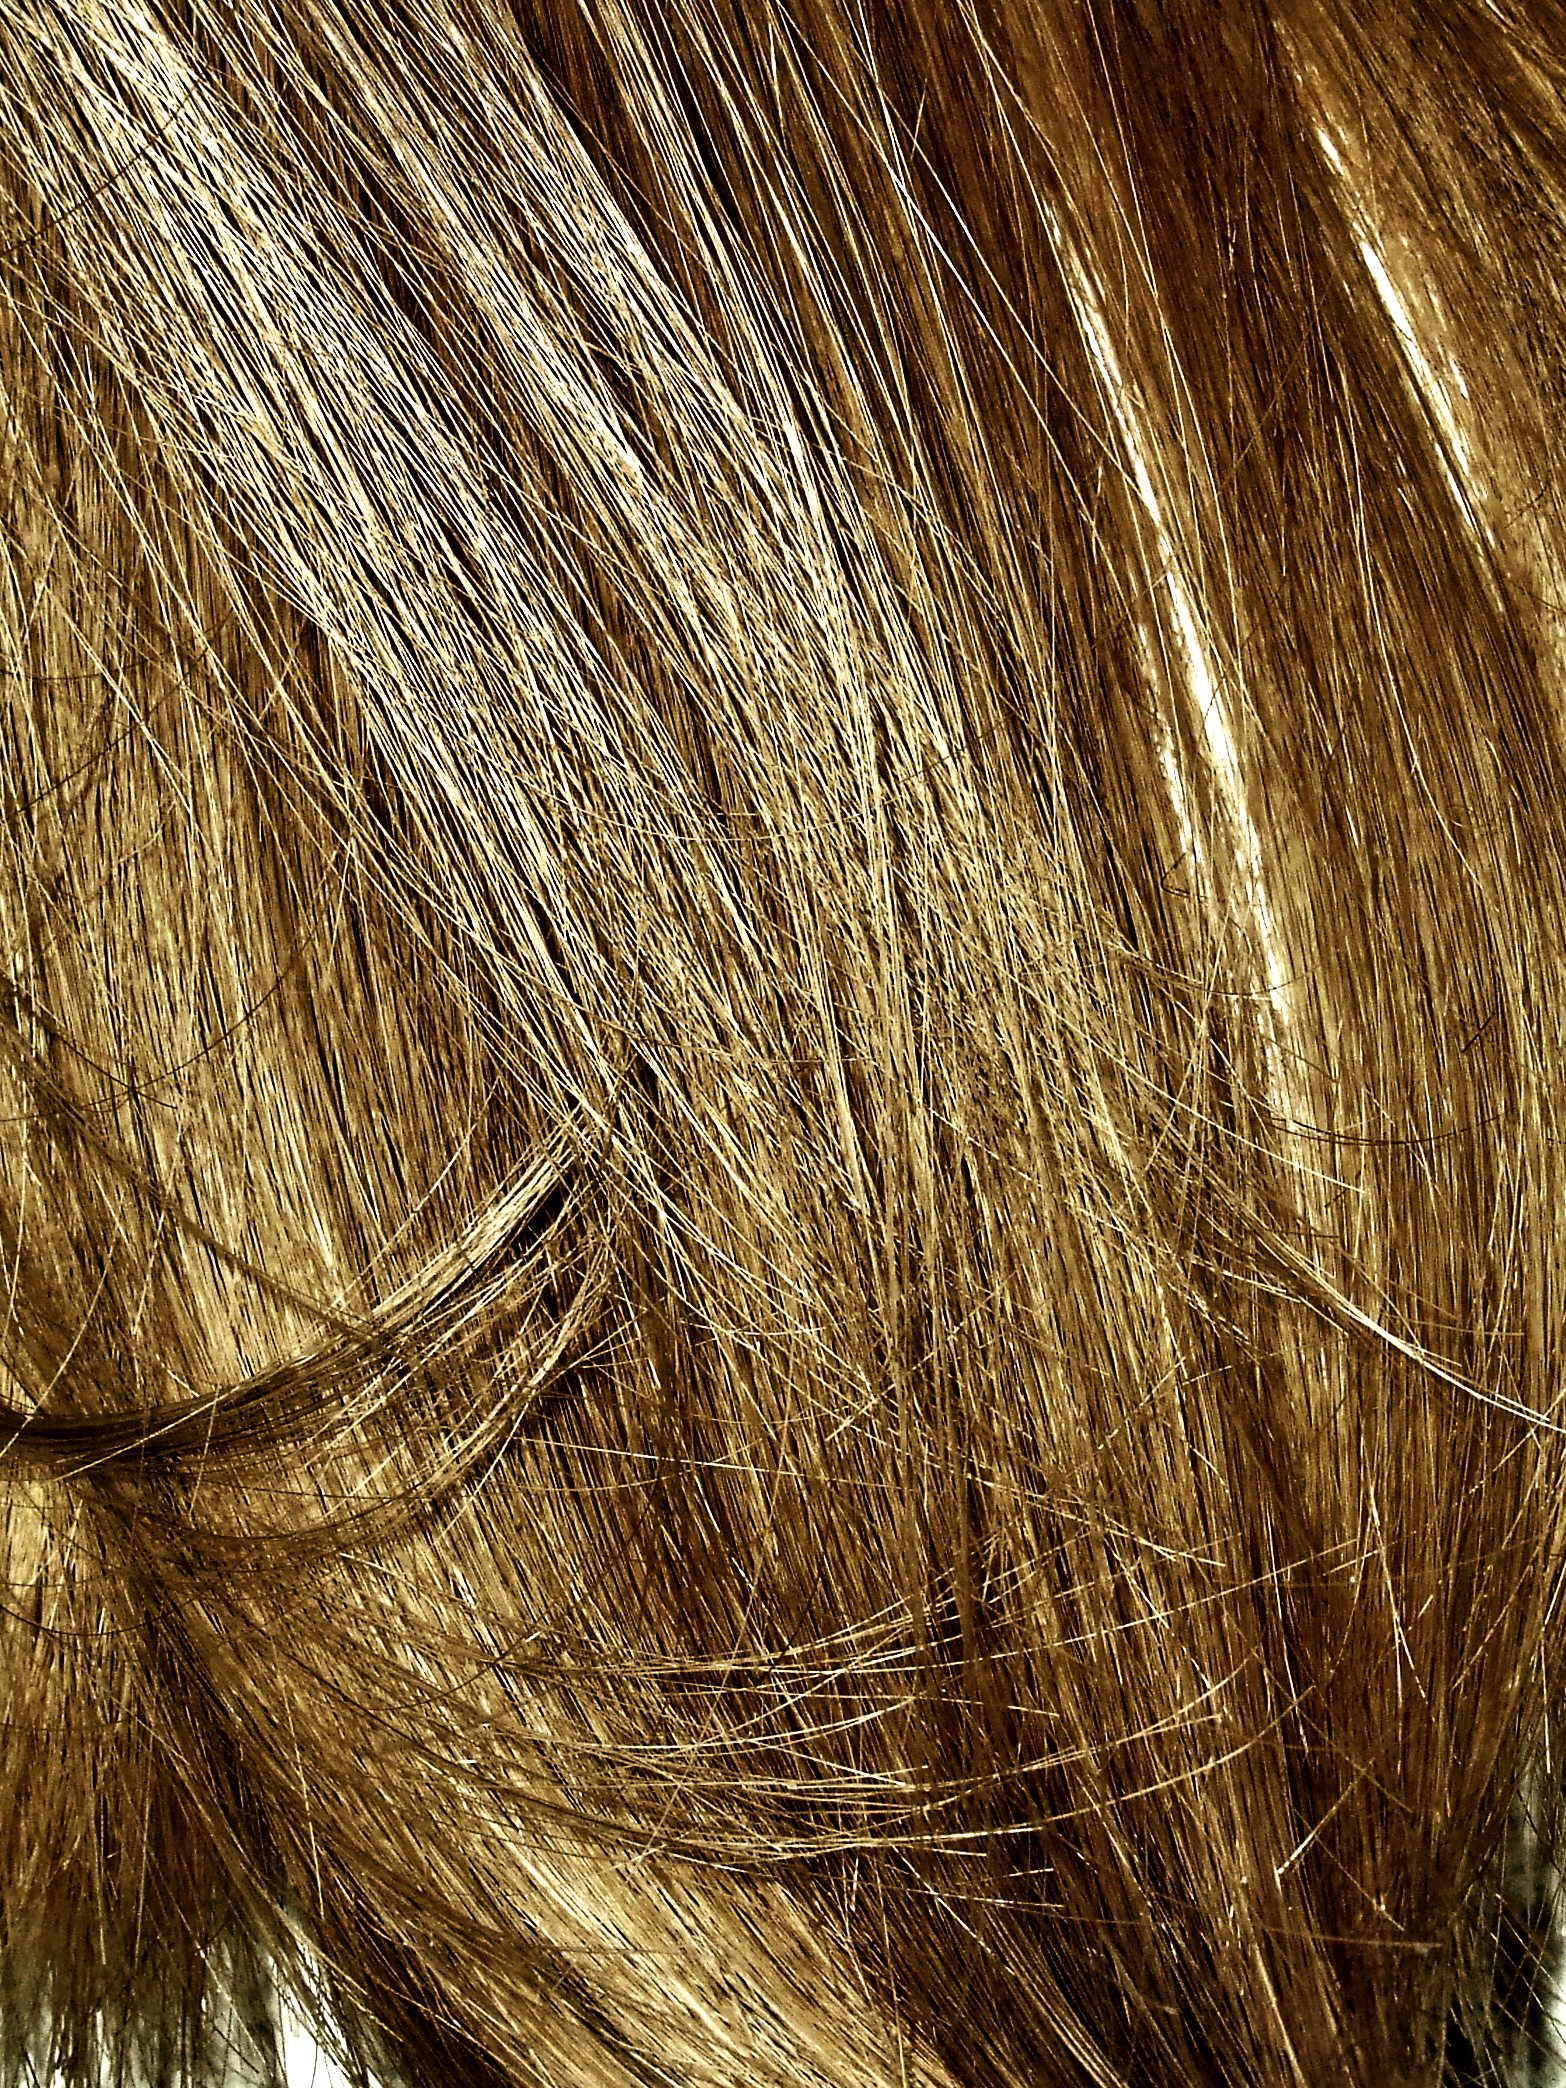 hair texture, background, hair texture, background